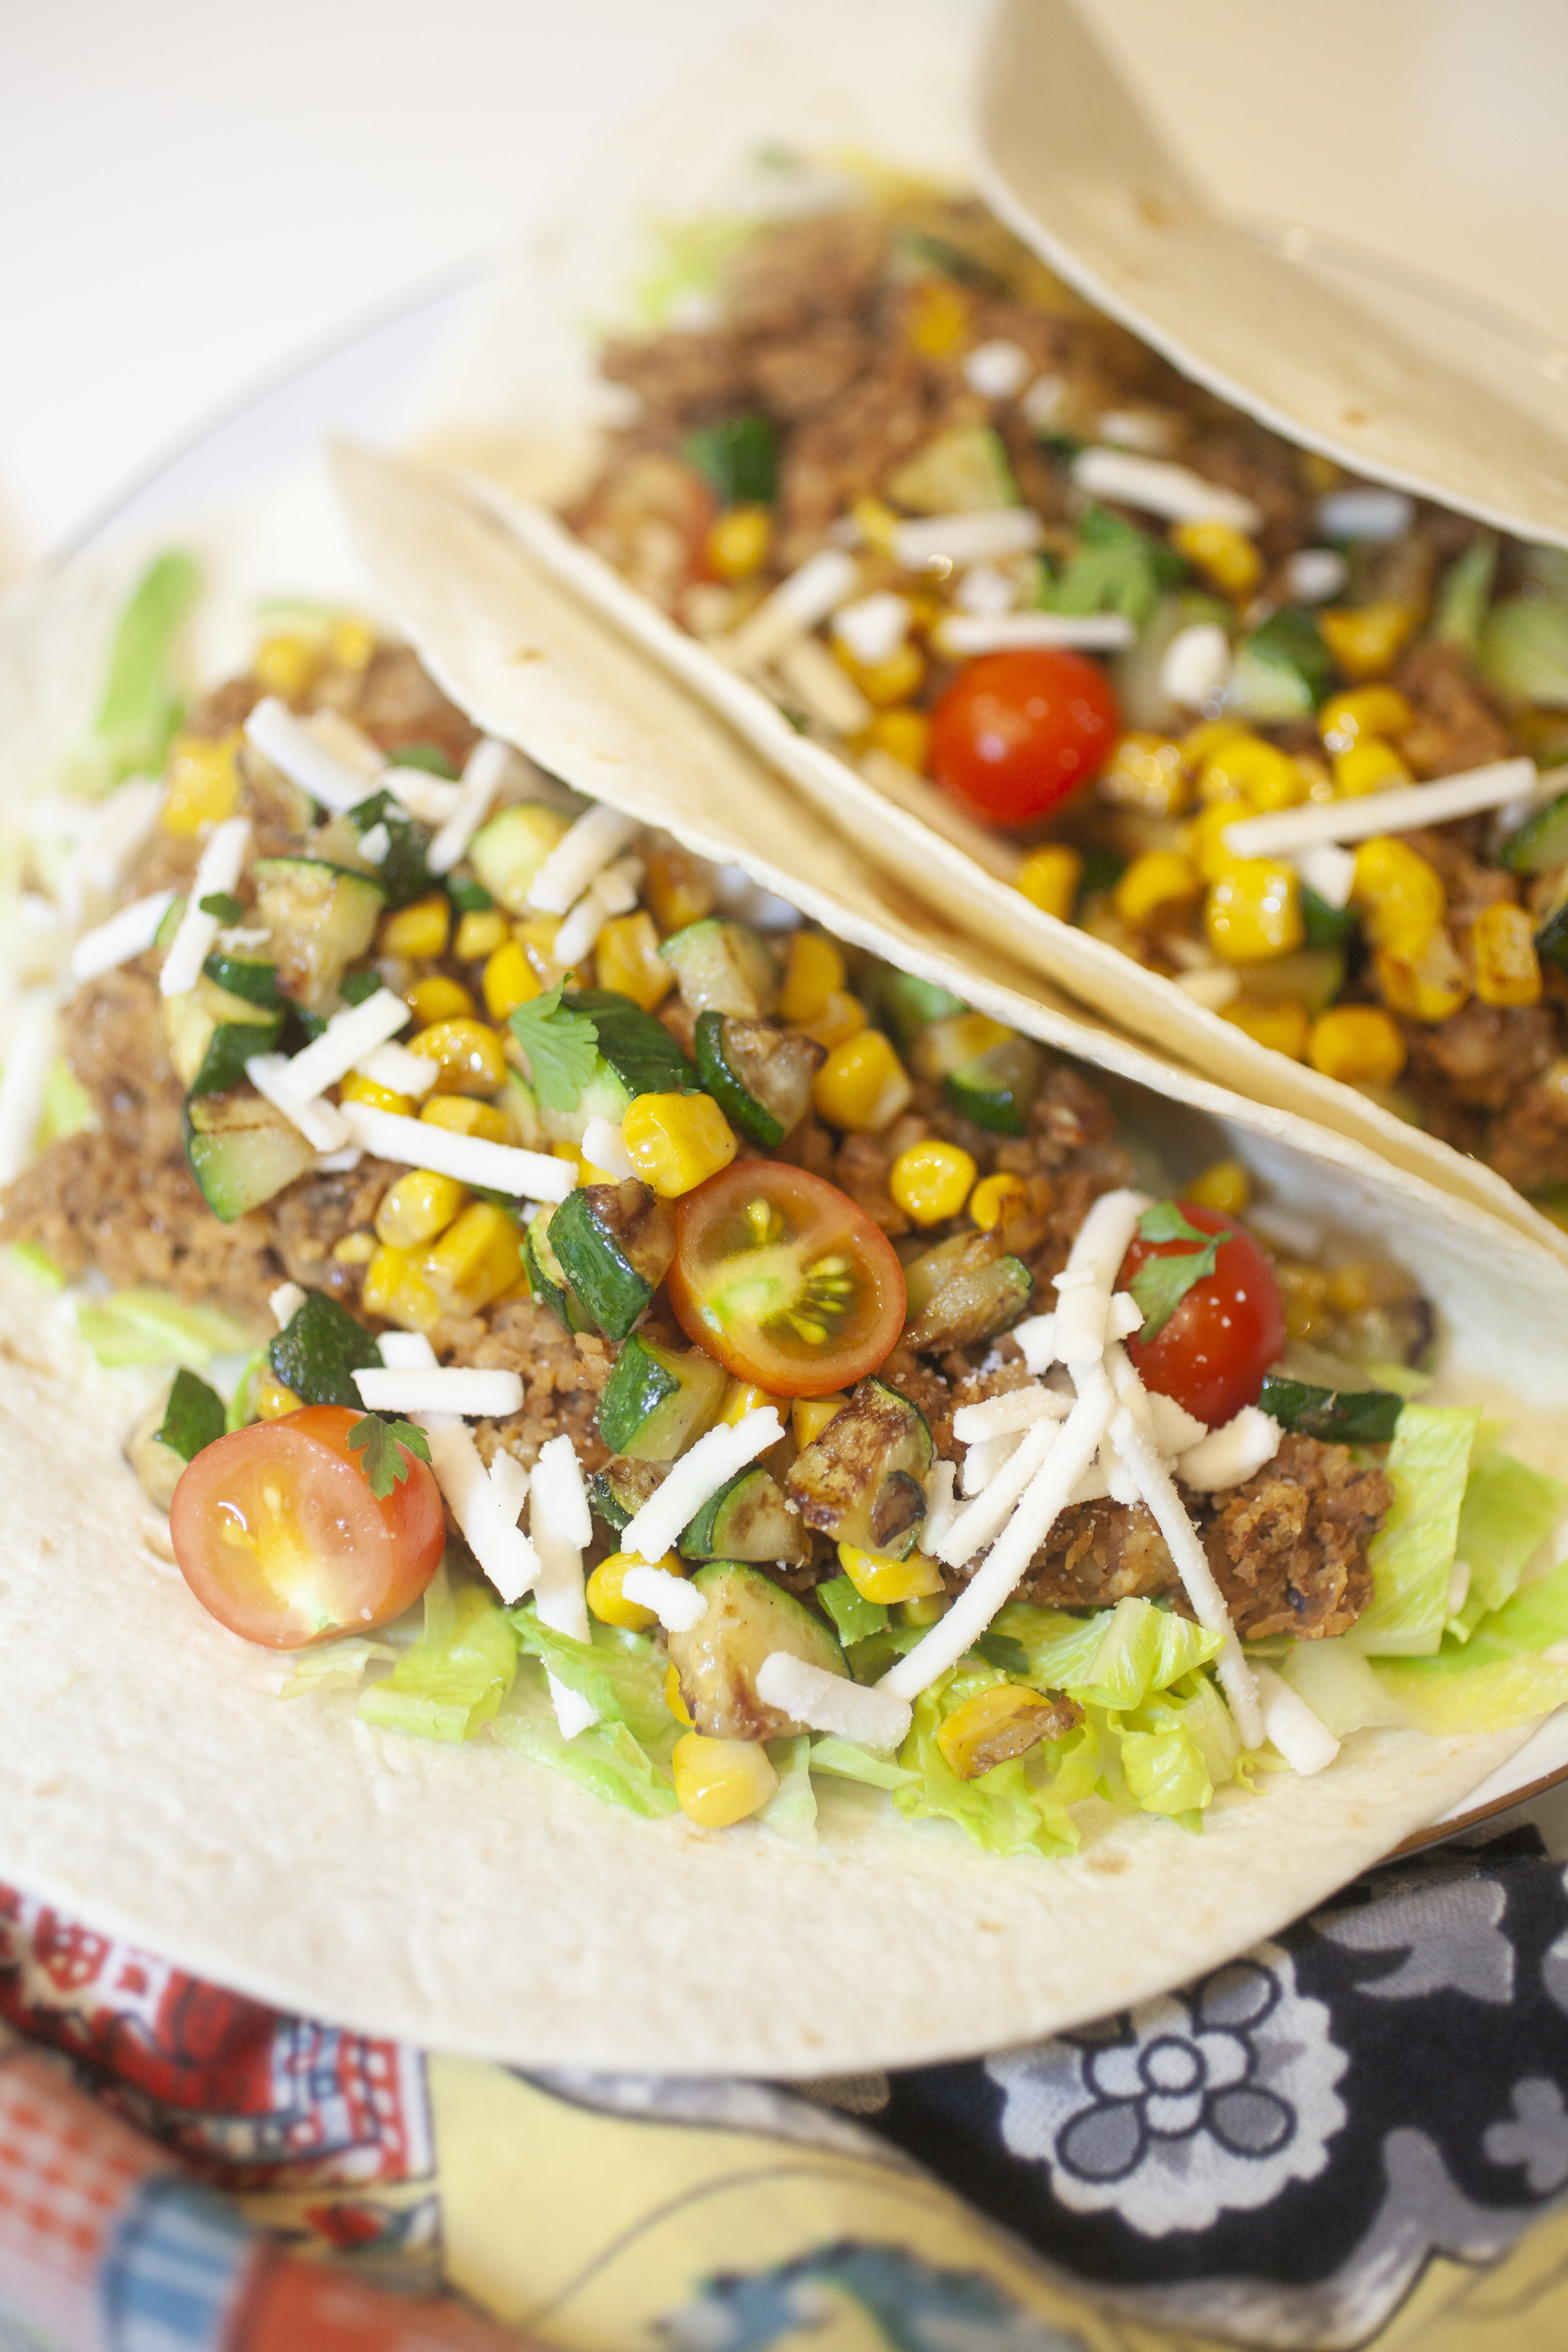 Corn & Zucchini Tacos with Chickpea & Walnut 'Meat' - Produce On Parade - This is one of the best weeknight meals around, vegan or otherwise! These tacos are super fast, healthy, there's very little prep, everyone loves them, the tacos are customizable to tastes, and they leave little cleanup. A giant win in my book!